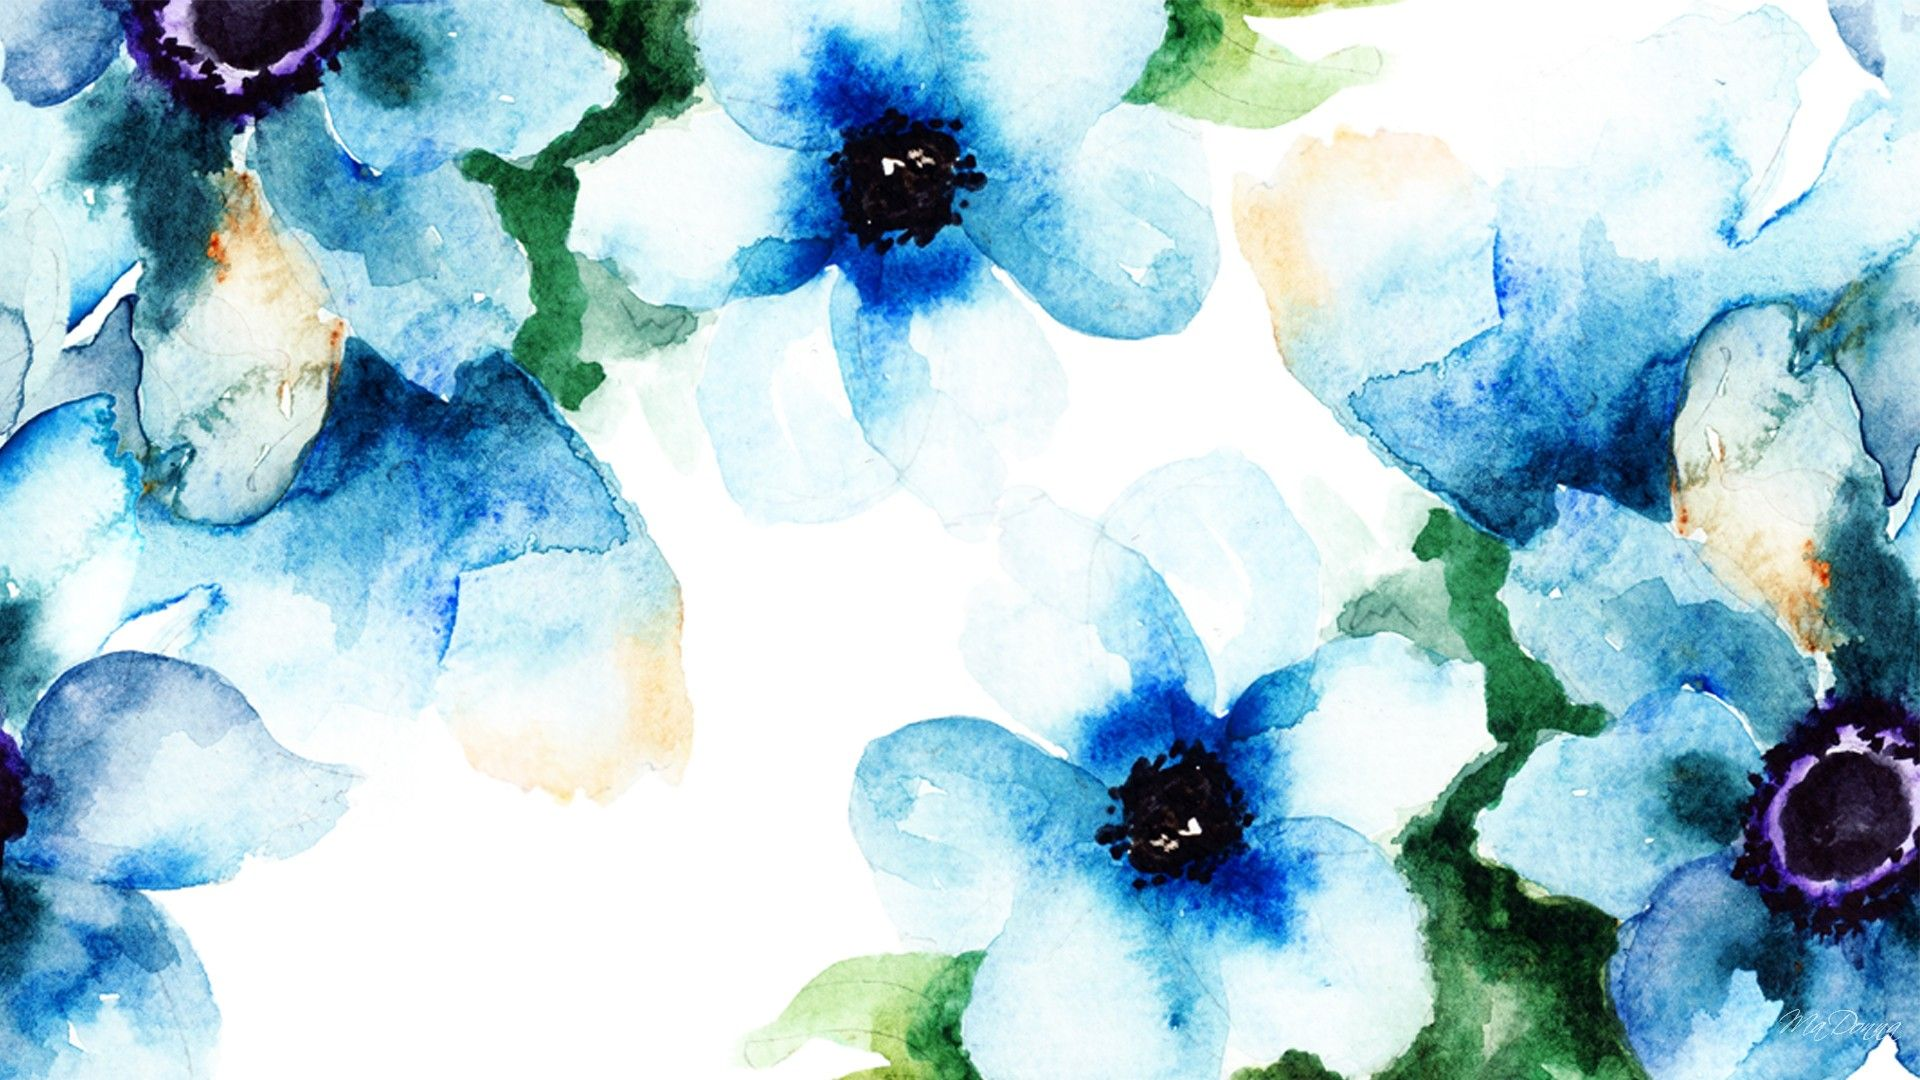 Watercolor Floral Blues Hd 1920 1080 Wallpaper Wp66010596